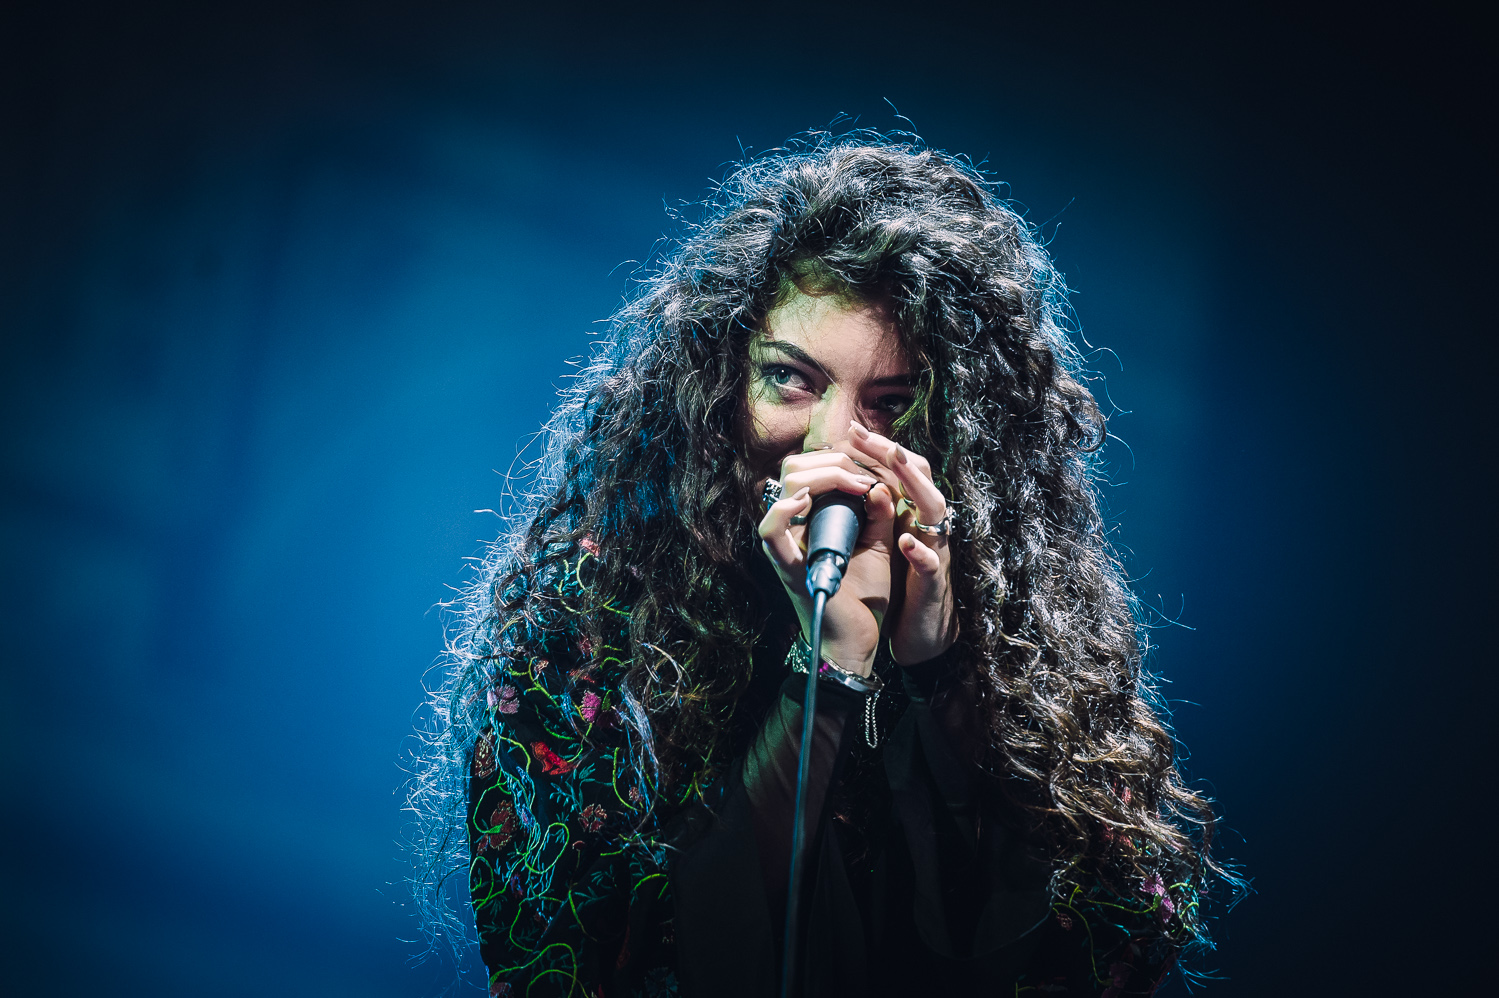 Lorde iHeart Radio_004_photo_©2013 Steve Dykes.jpg